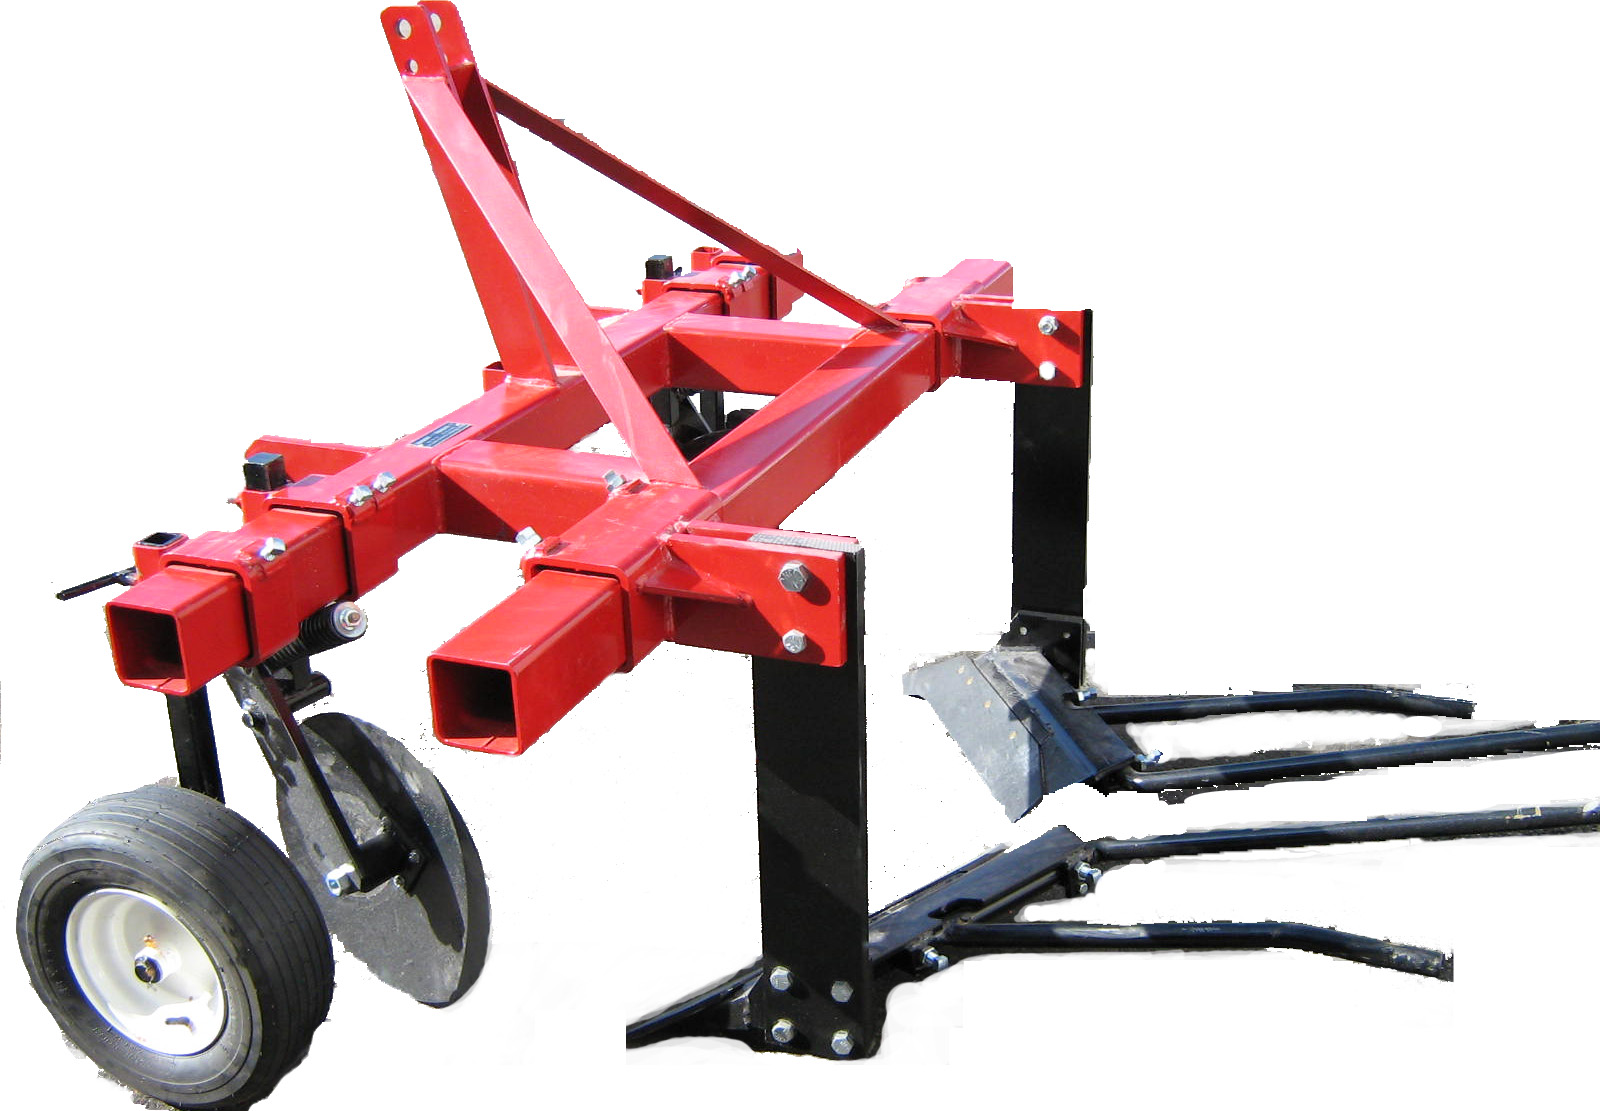 Red mulch lifter